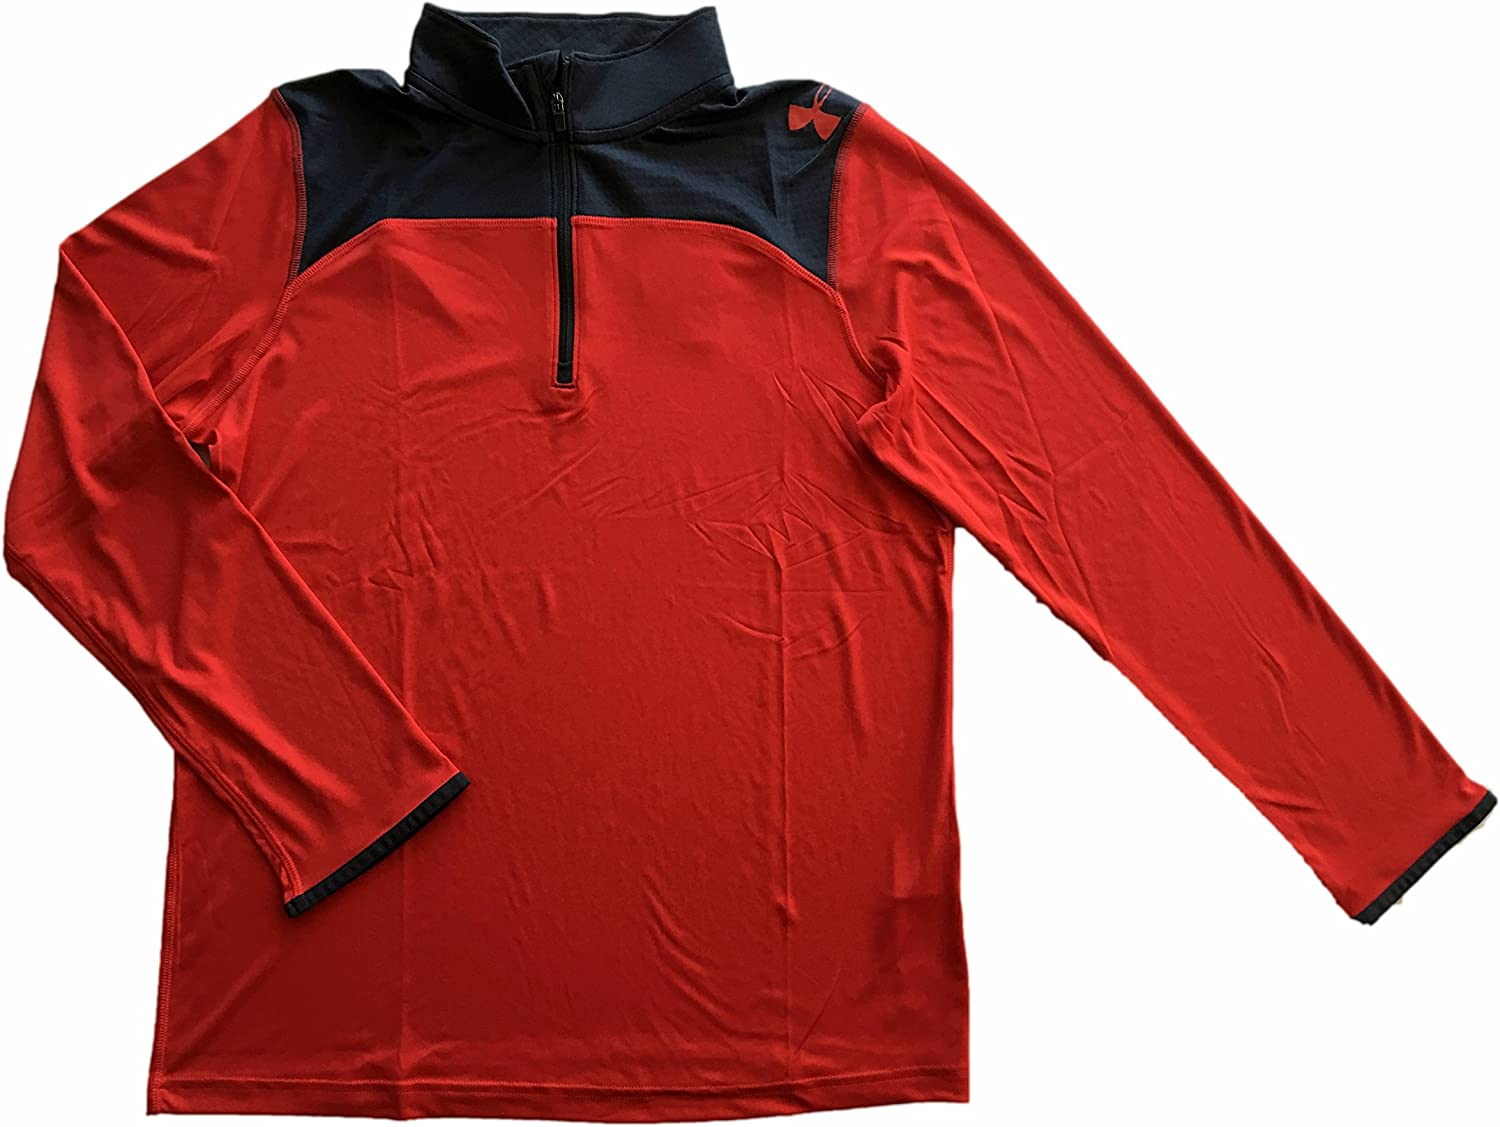 Under Armour Boys Youth Combine Training /¼ Zip Boys Long Sleeve Red Shirt